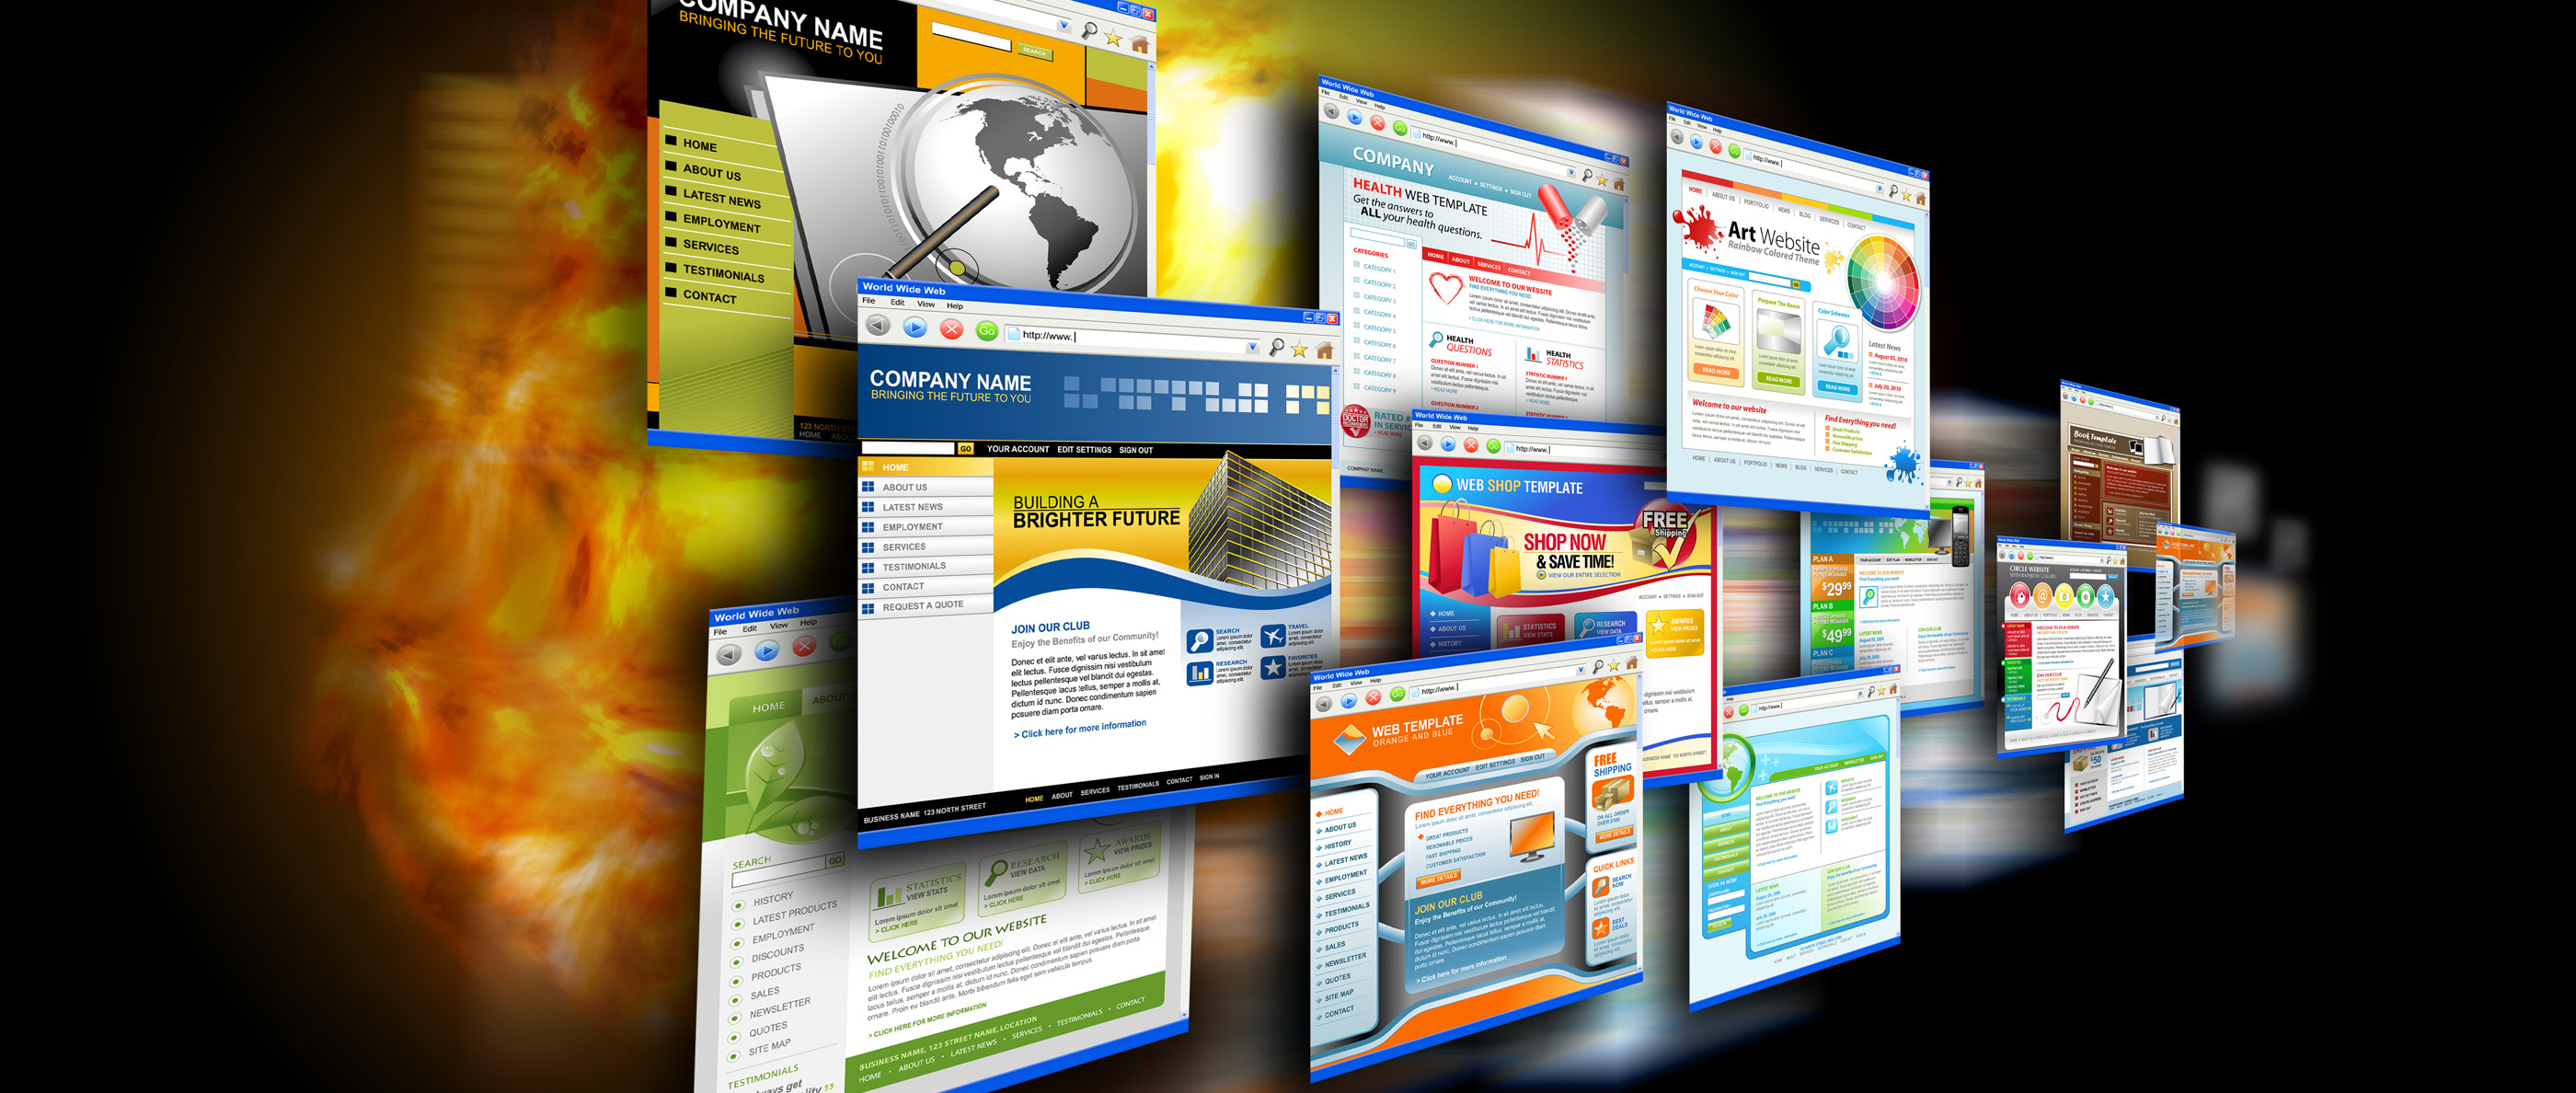 The Amazing Benefits of a Professionally Designed Website: dpk-graphicdesign.com/the-amazing-benefits-of-a-professionally...